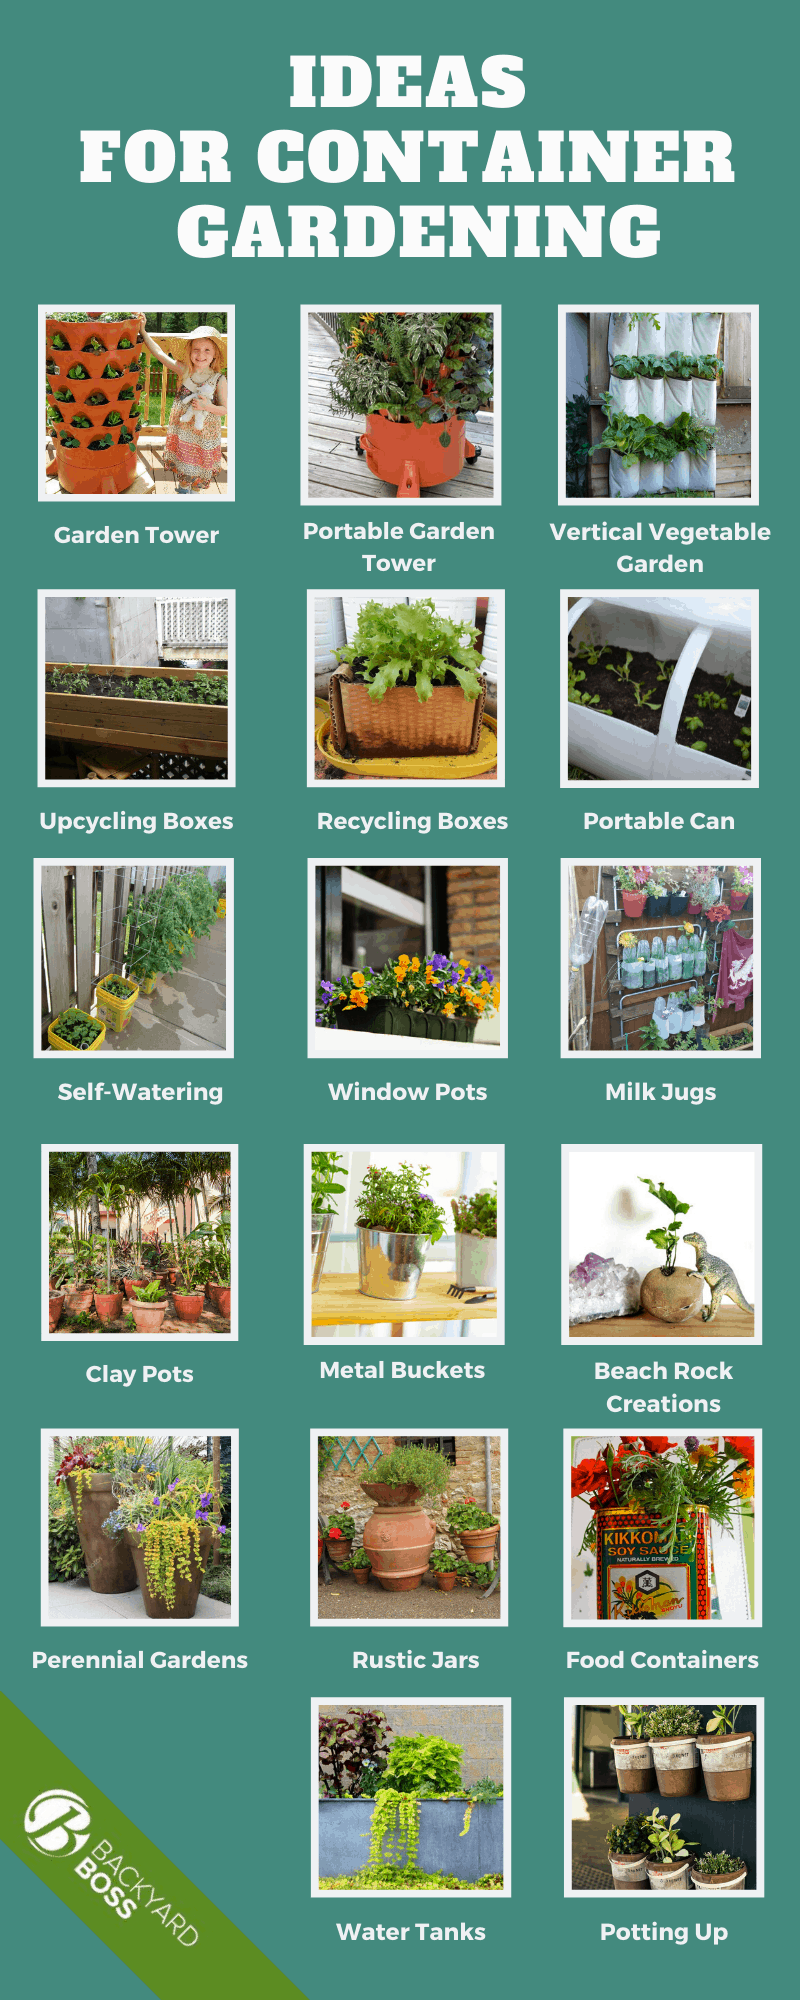 Ideas for Container Gardening - Infographic